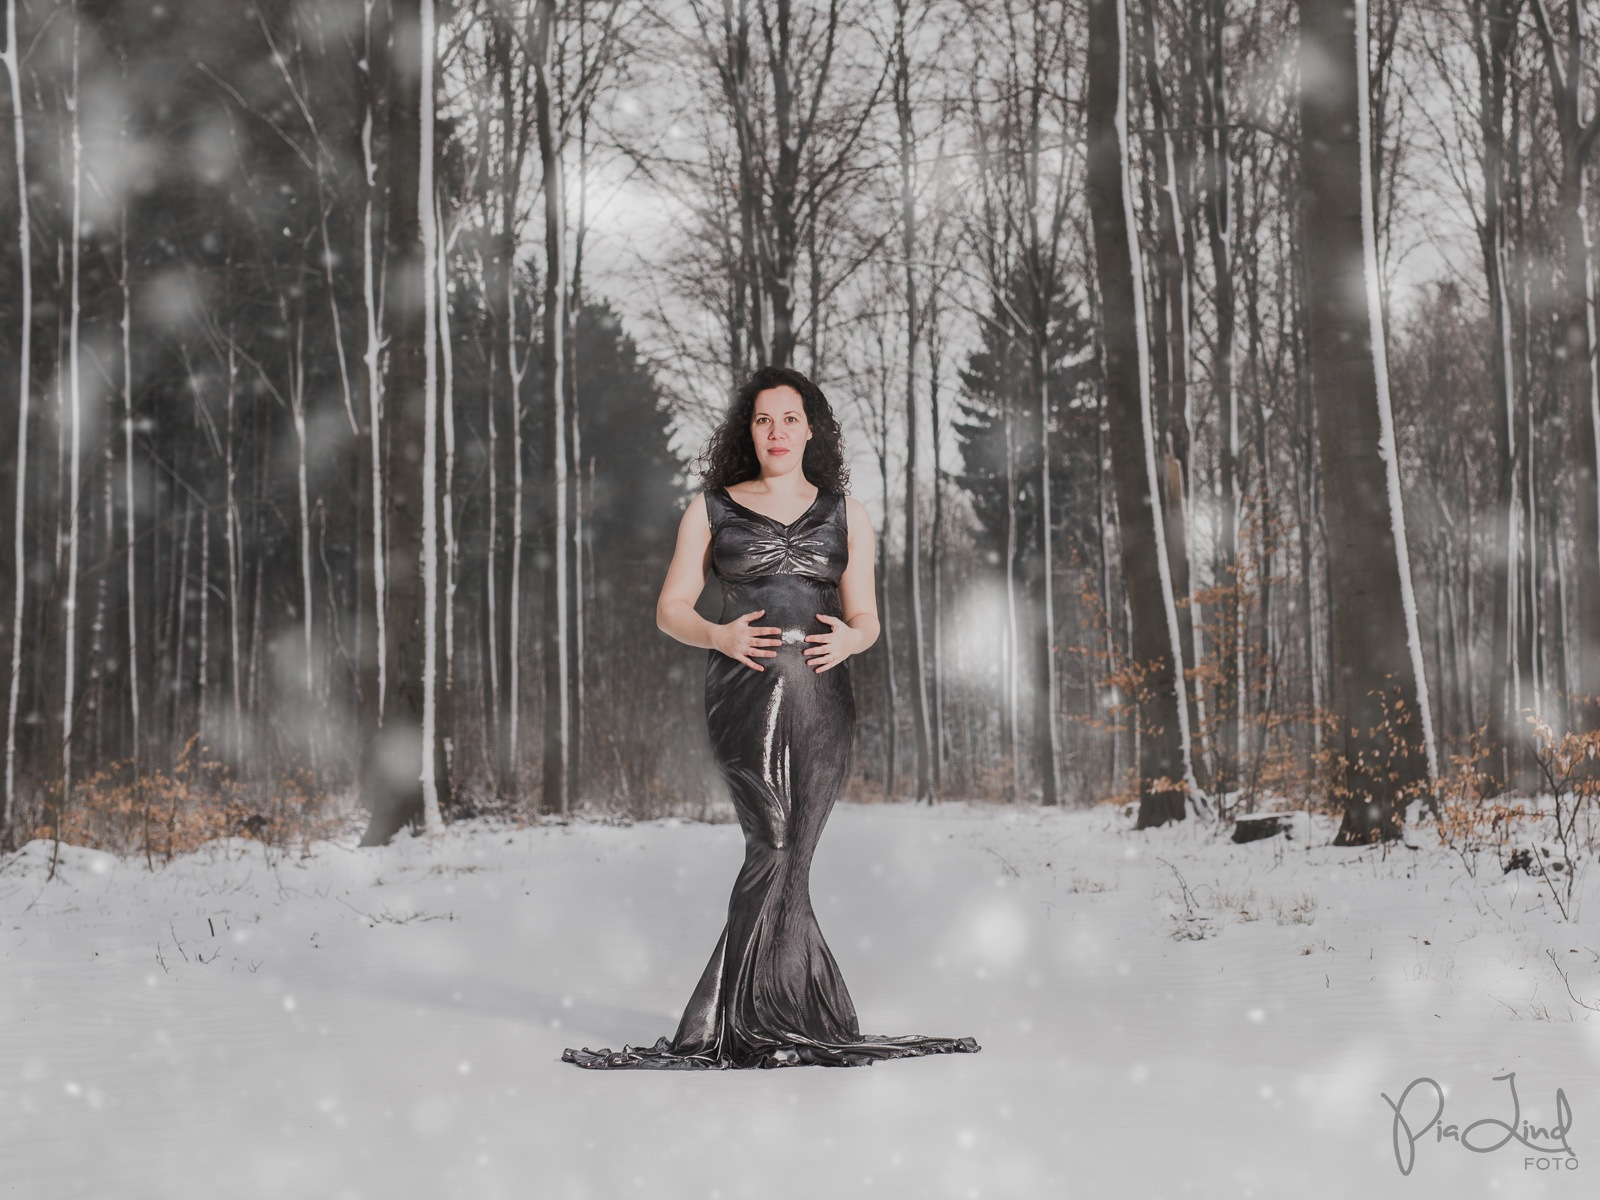 Snowing Silver by Pia Lindstrøm